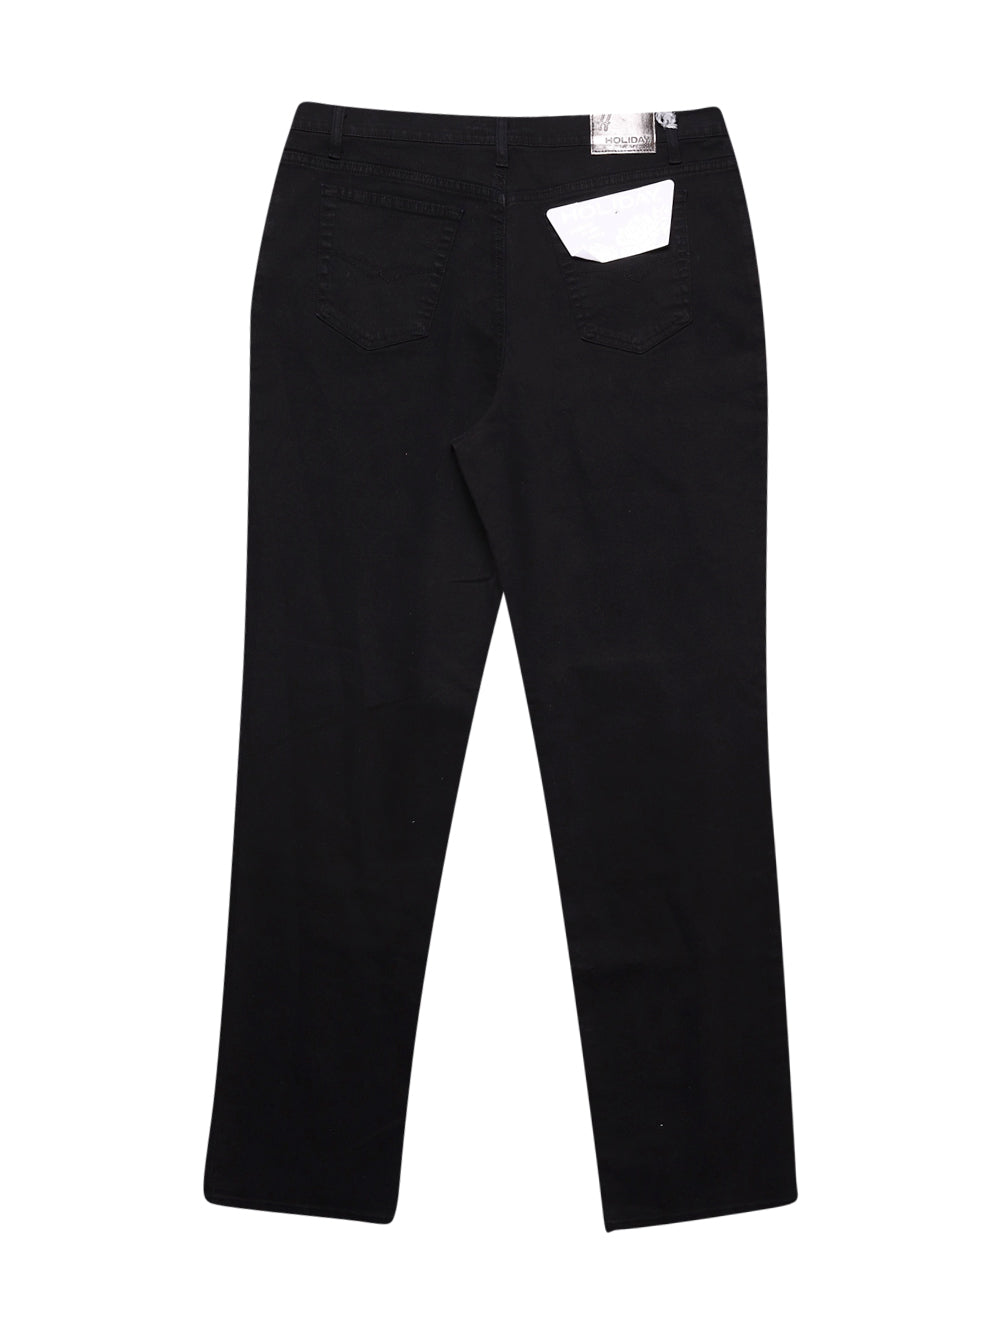 Back photo of Unworn holiday Black Woman's trousers - size 8/S